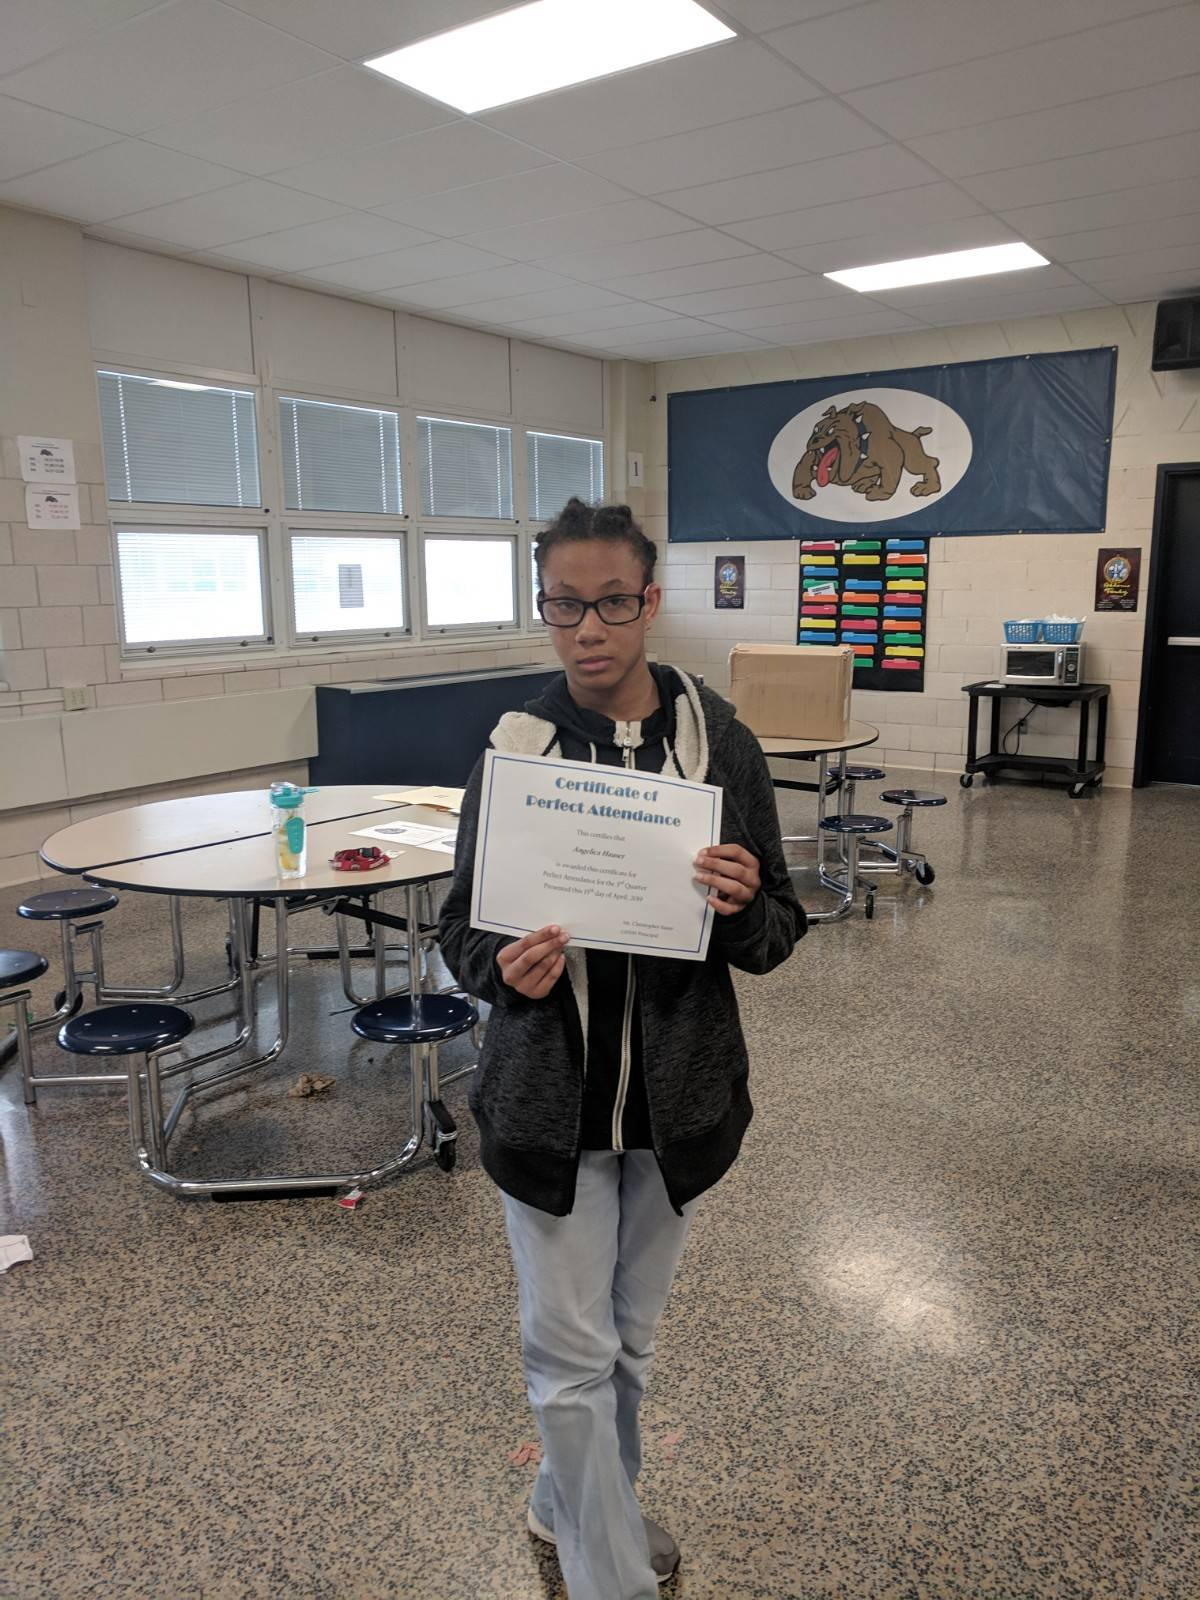 Student with positive behavior certificate